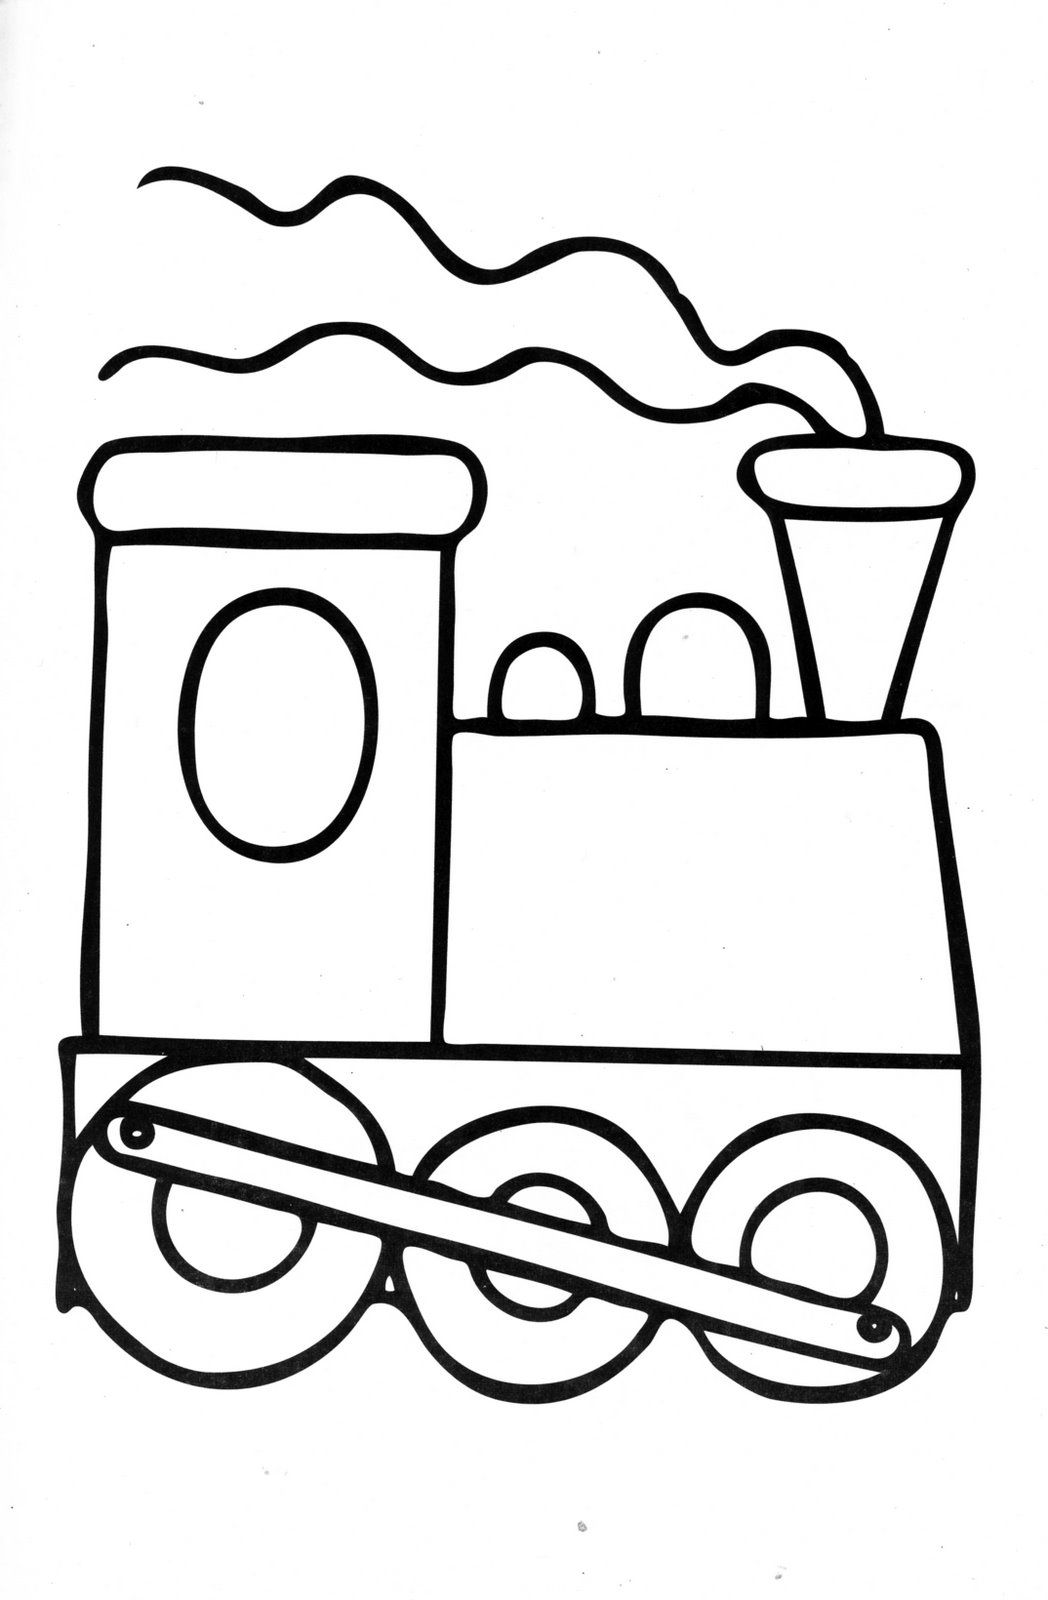 Train coloring template - Image Detail For Train Coloring Pages For Kids Coloring Ville